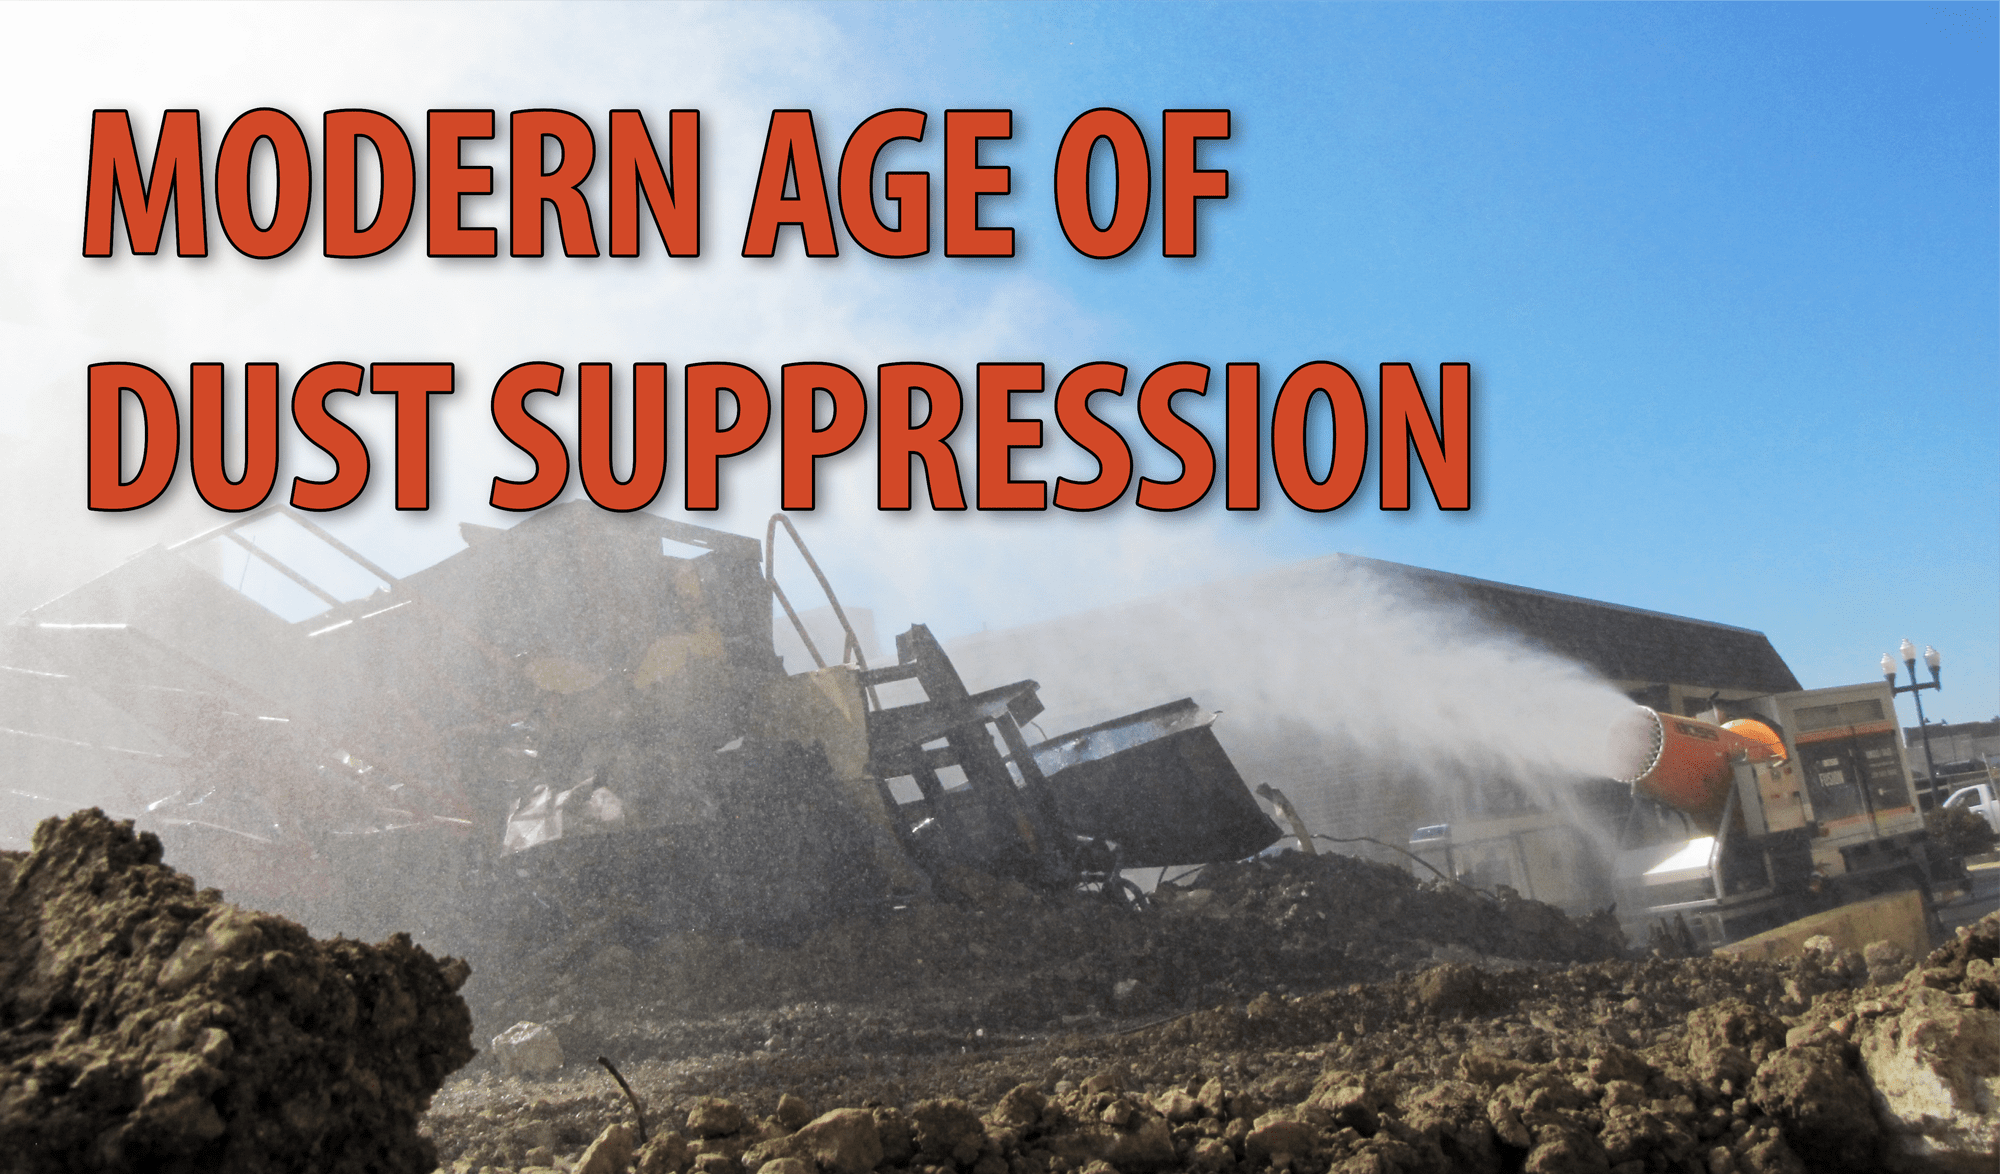 modern-age-of-dust-suppression-thumbnail